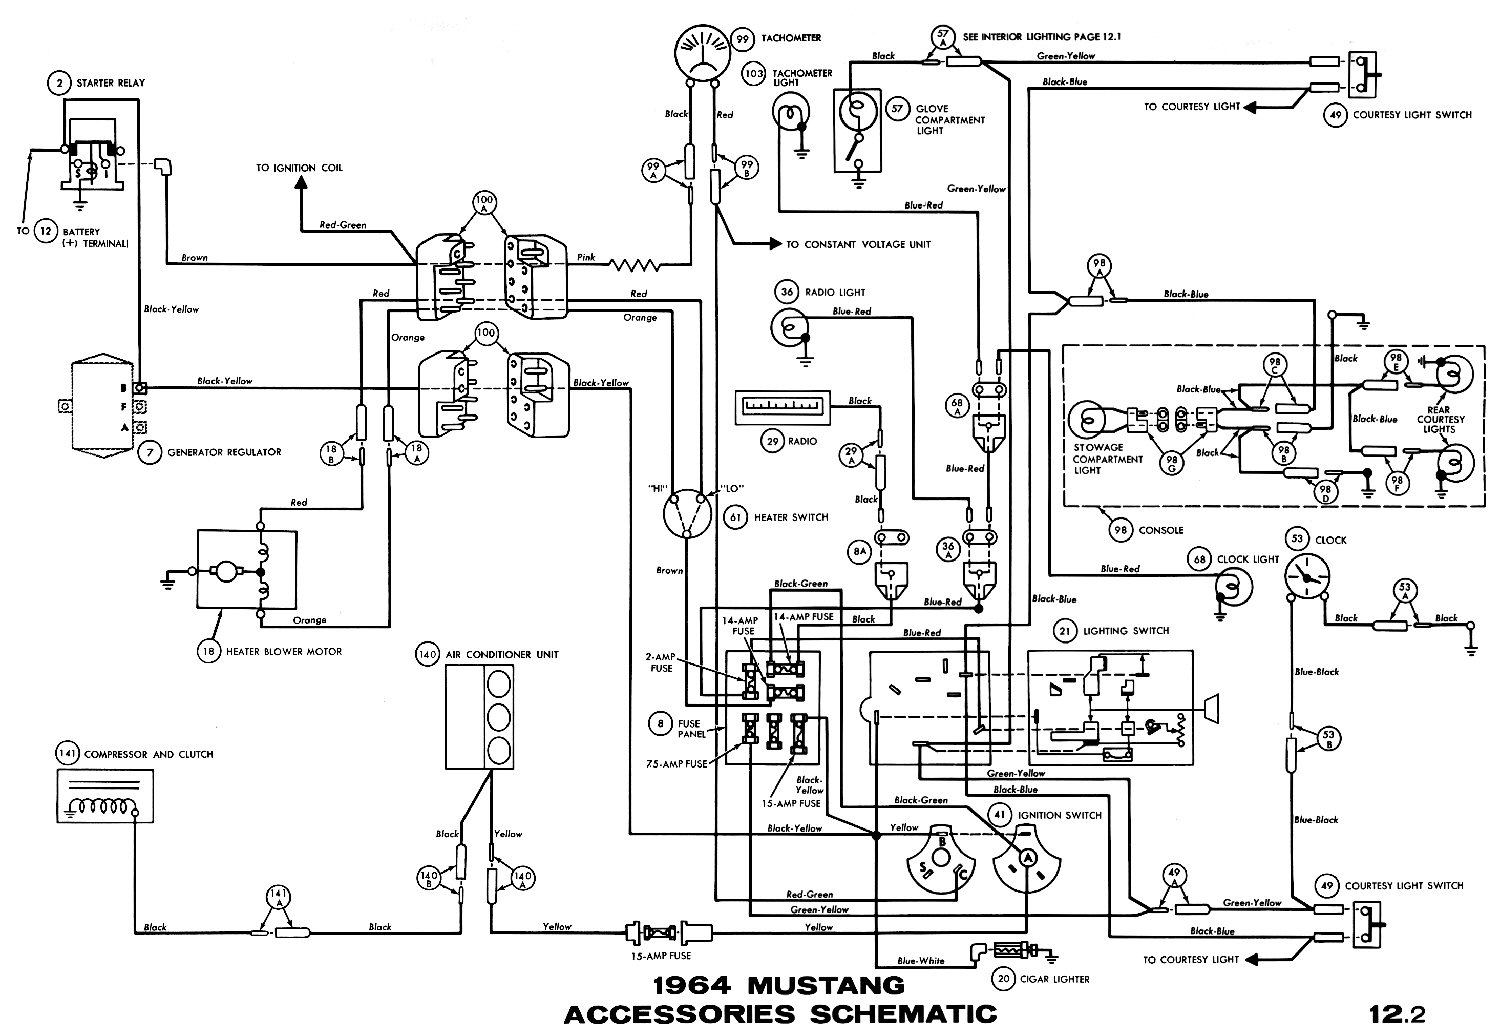 1964m 1964 mustang wiring diagrams average joe restoration ford mustang wiring diagram at cos-gaming.co